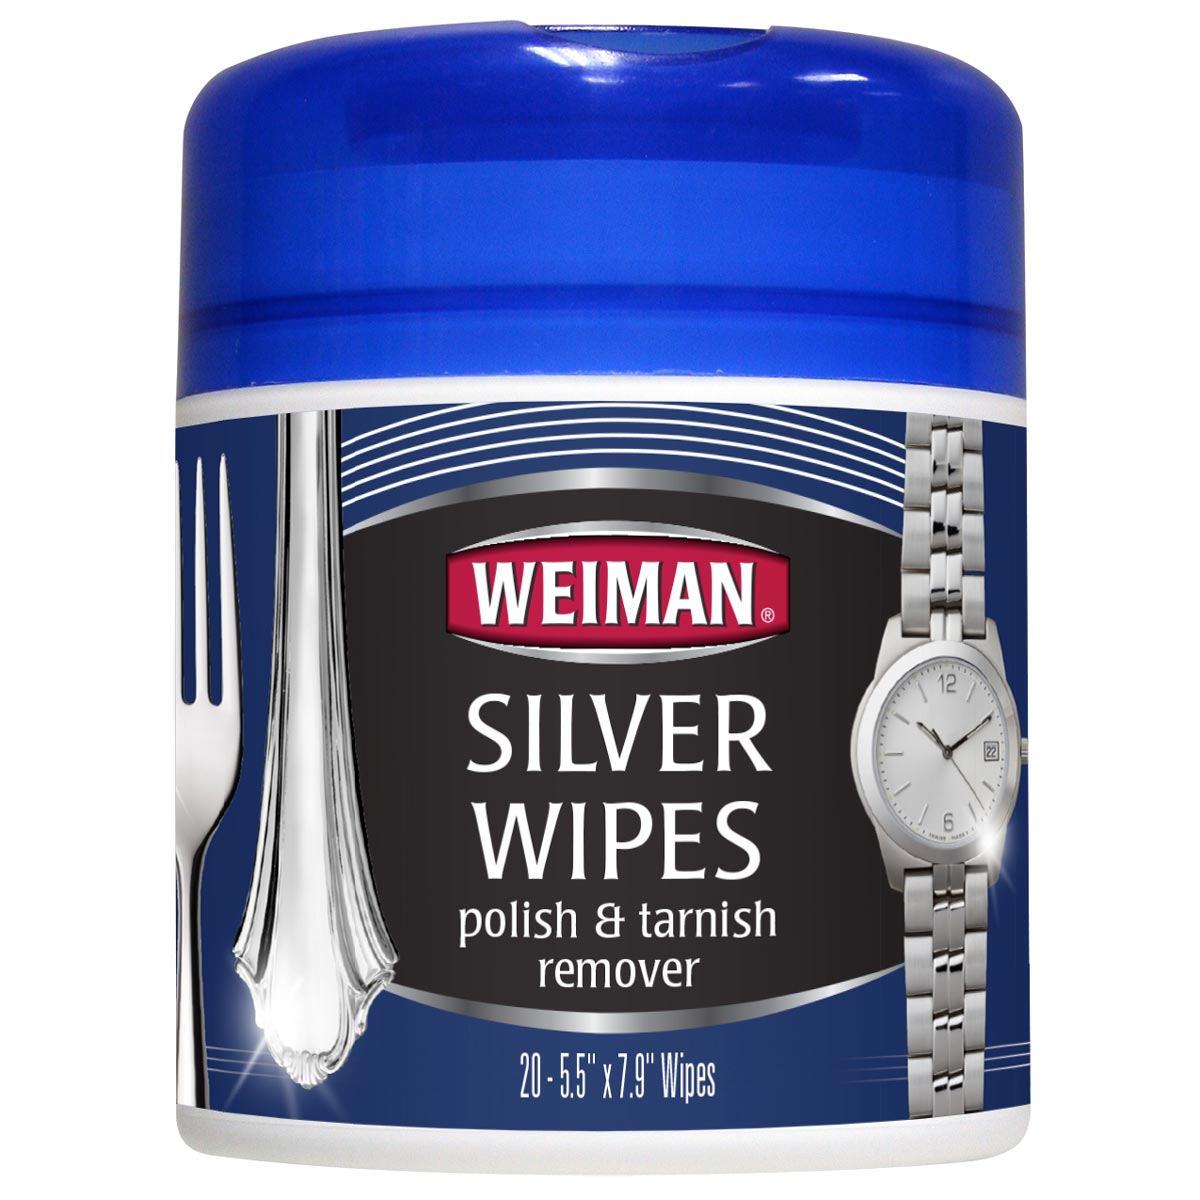 https://googone.com/media/catalog/product/w/e/weiman-silver-wipes_front_1.jpg